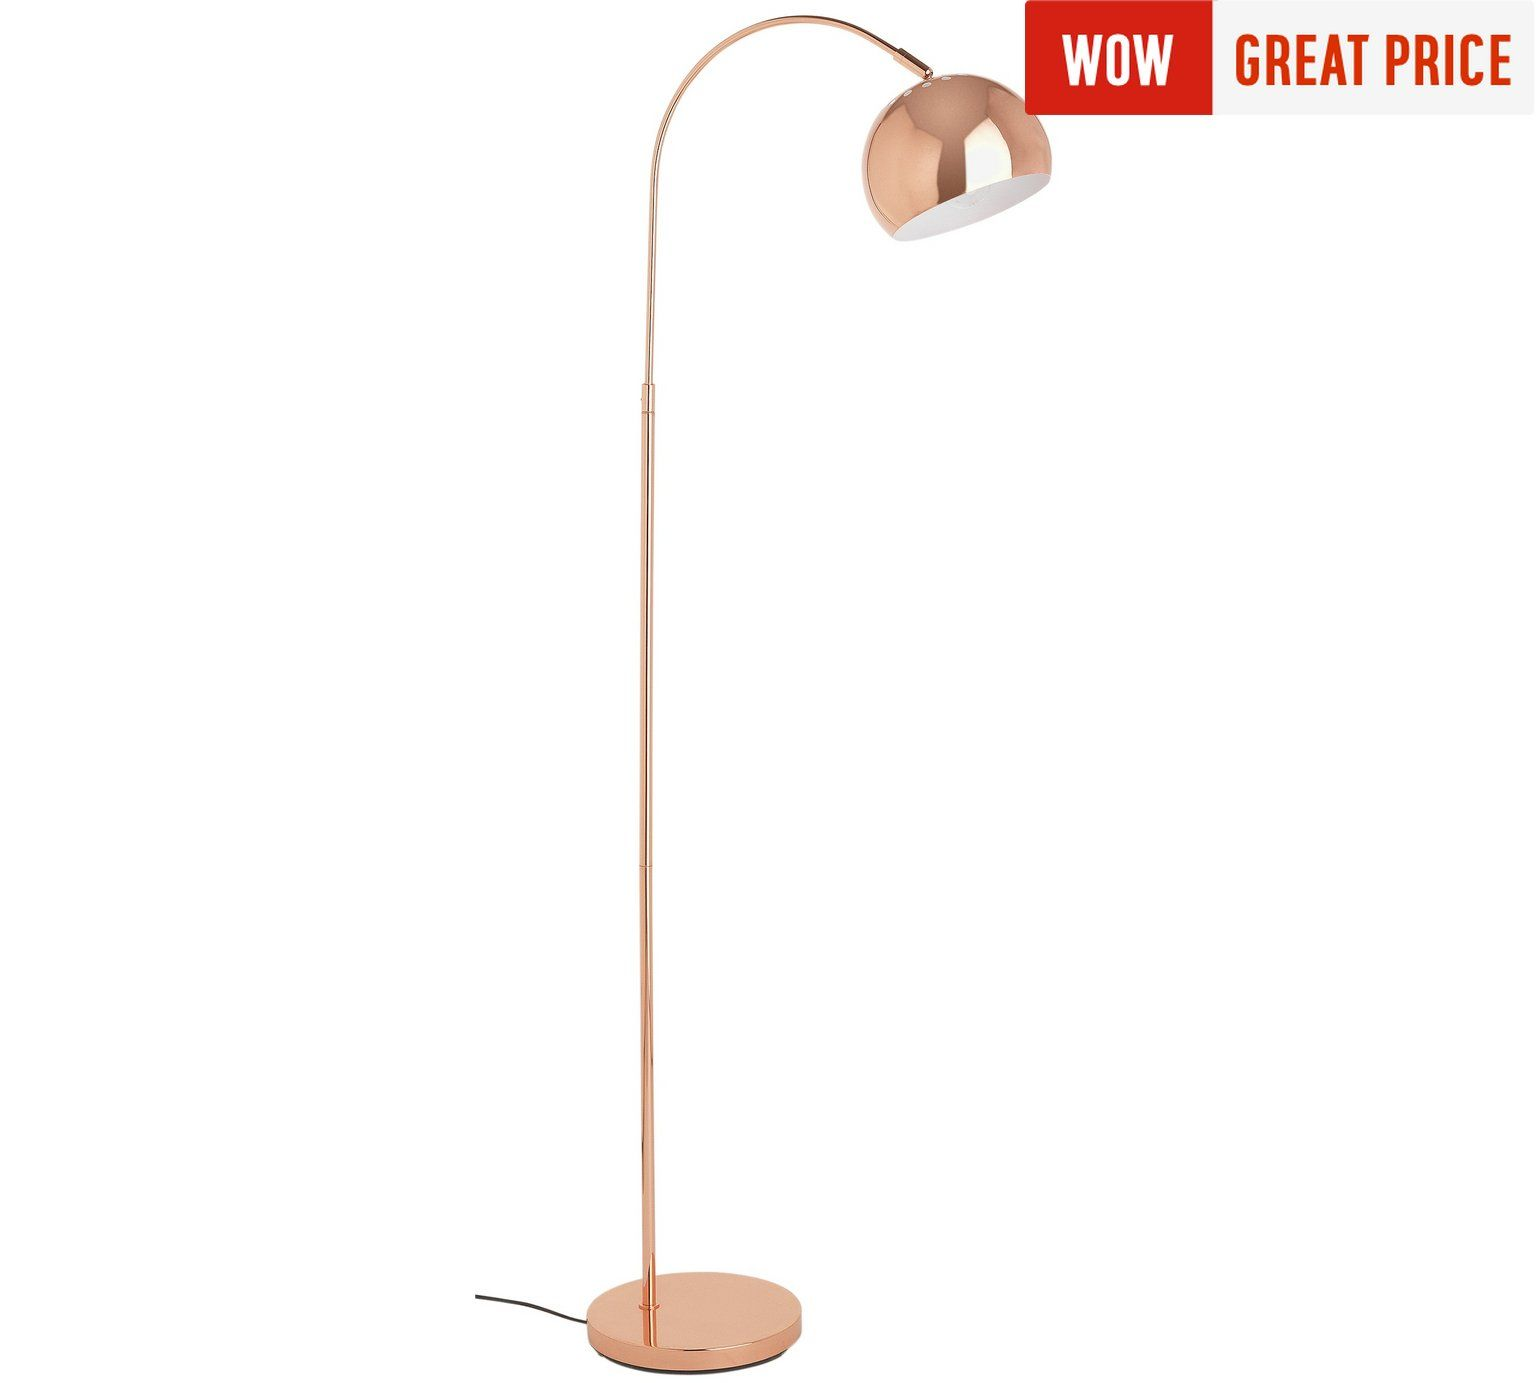 Buy Home Curva Floor Lamp Copper At Argos Co Uk Visit Argos Co Uk To Shop Online For Floor Lamps Lighting Copper Floor Lamp Floor Lamp Indoor Floor Lamps